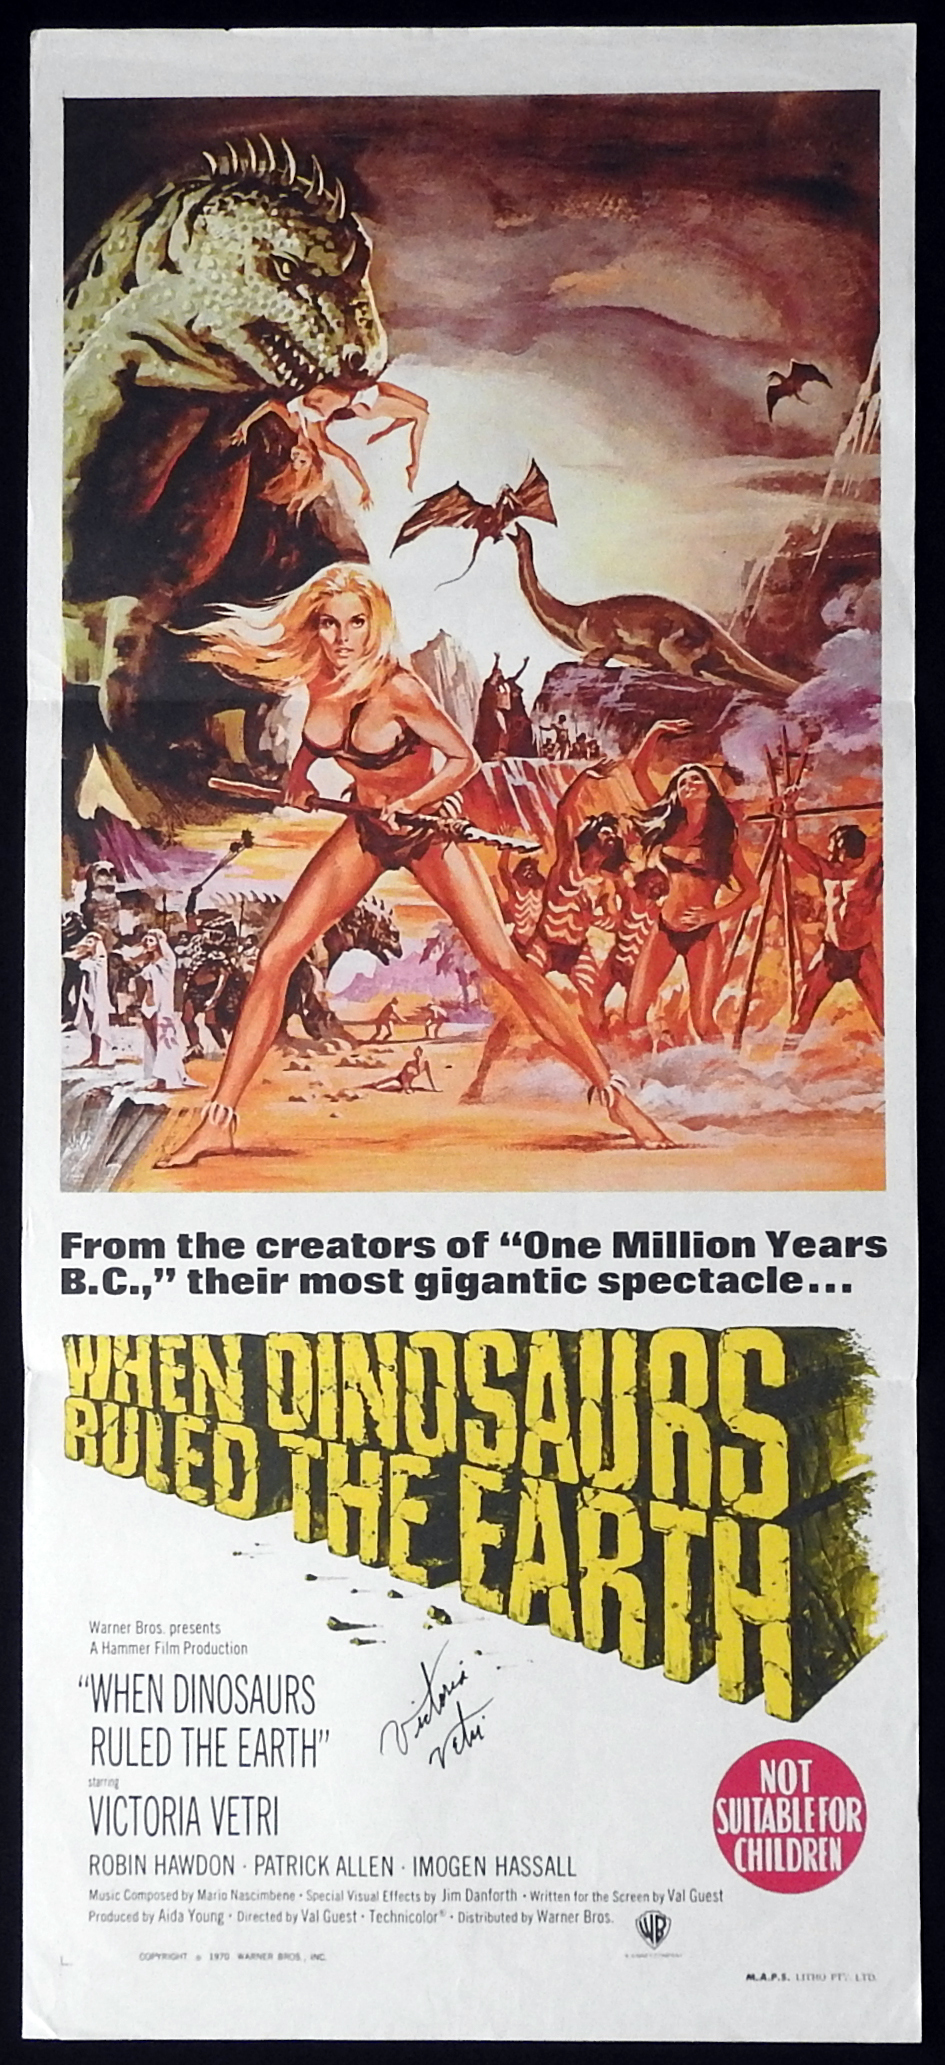 WHEN DINOSAURS RULED THE EARTH Original Daybill Movie Poster VICTORIA VETRI Autograph